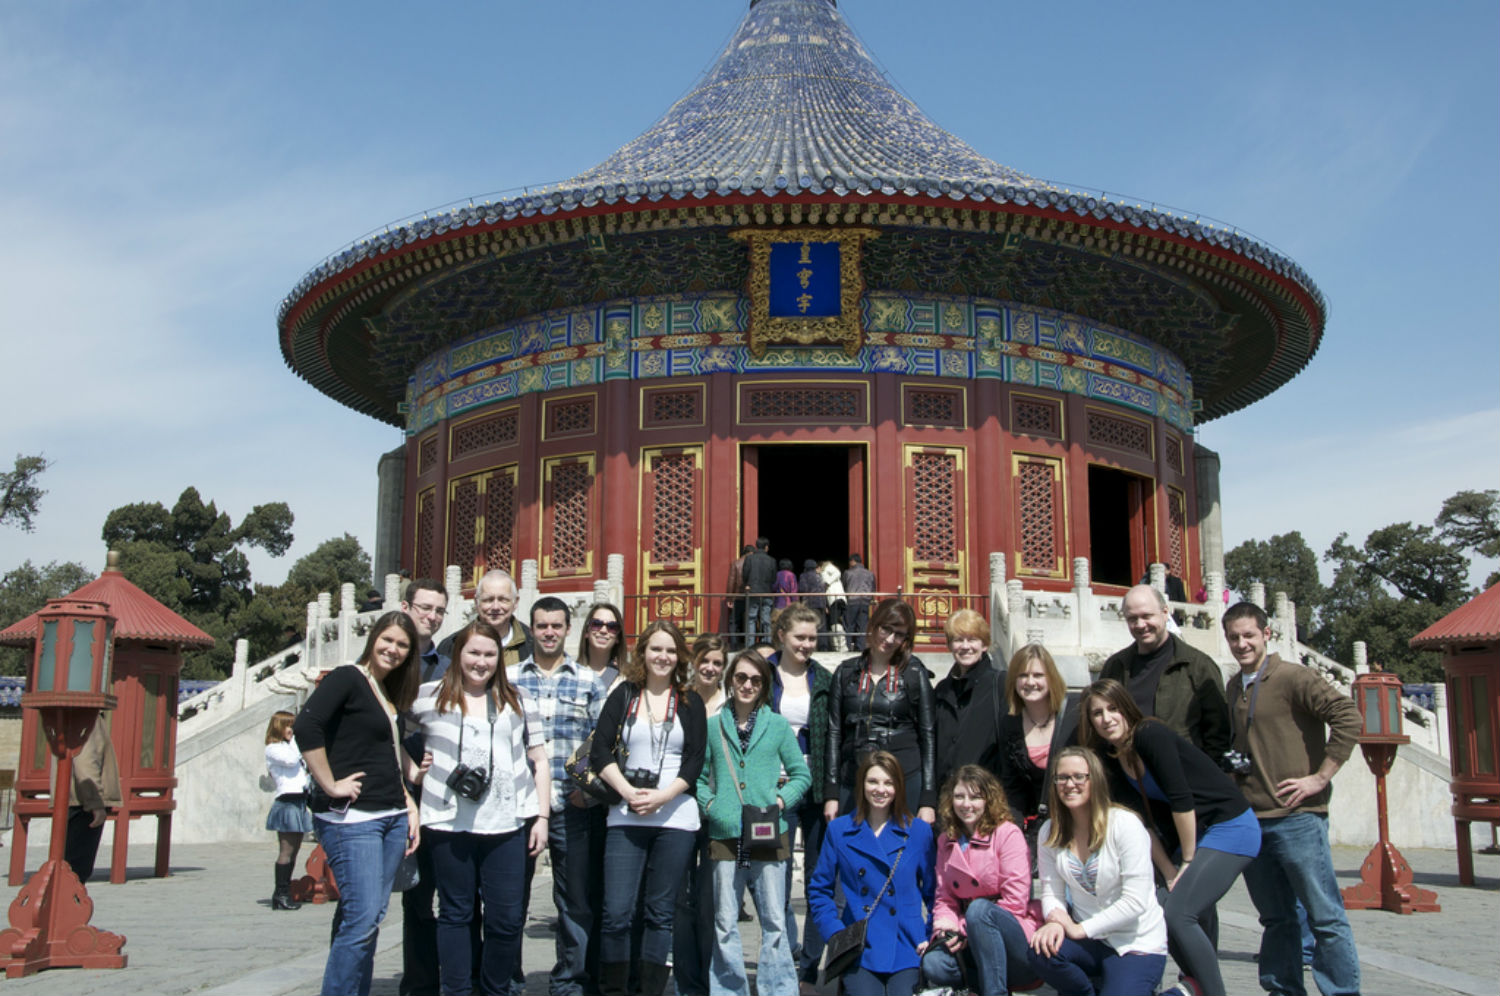 Group of students, gathered together posed and smiling for the camera in Asia